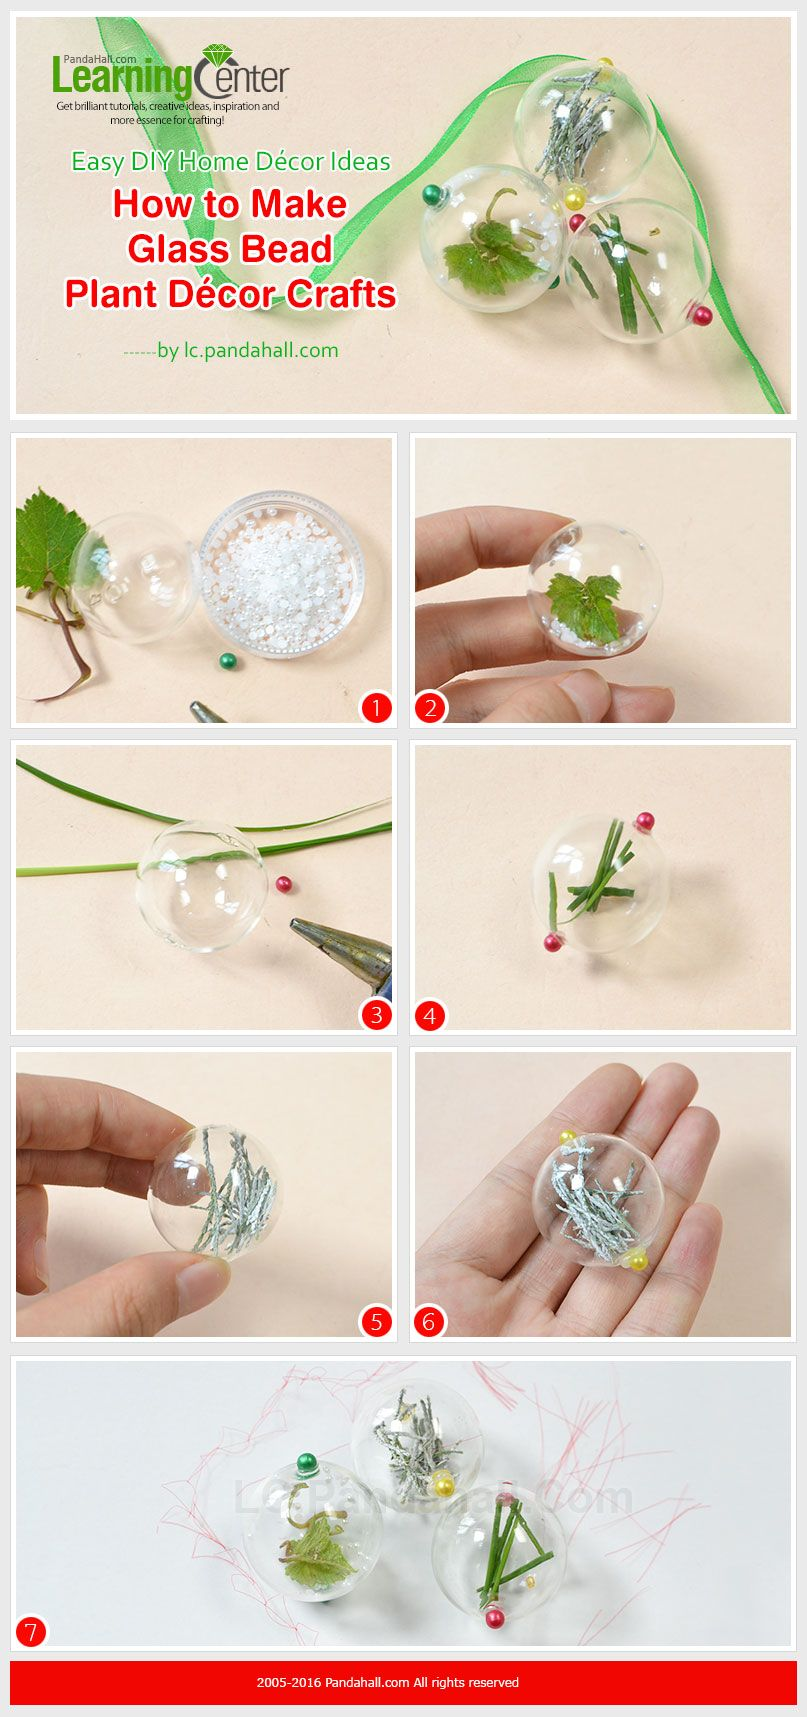 Easy DIY Home Décor Ideas - How to Make Glass Bead Plant Décor ...